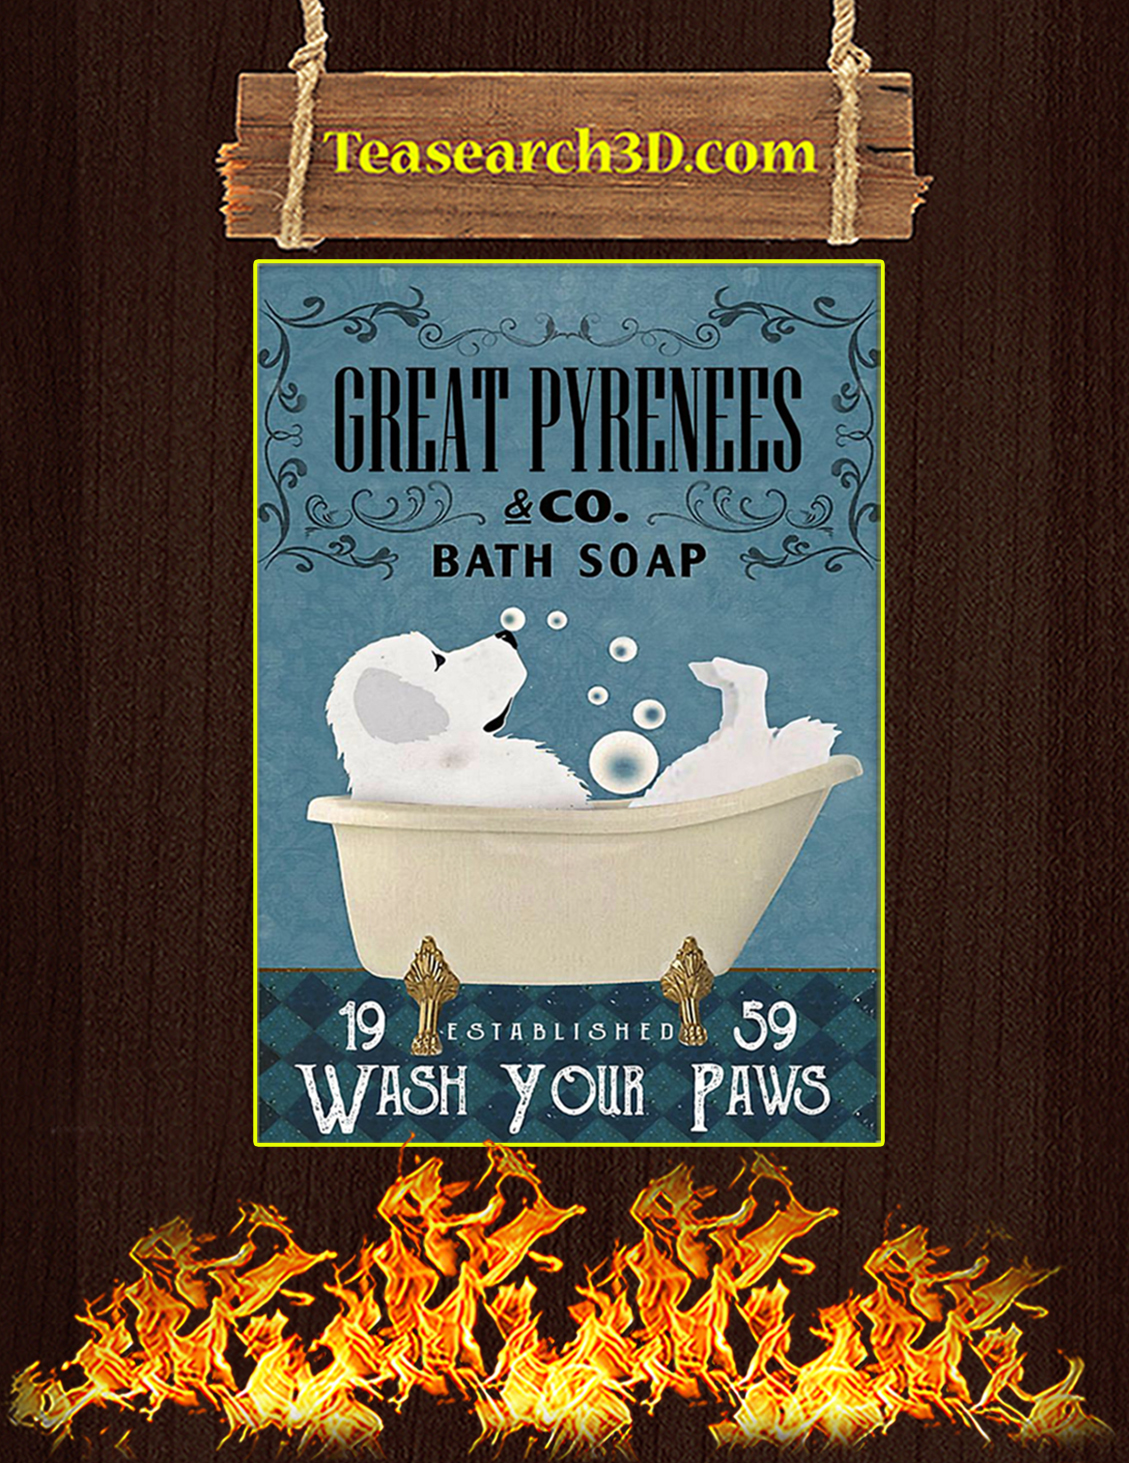 Bath Soap Company Great Pyrenees Poster A3